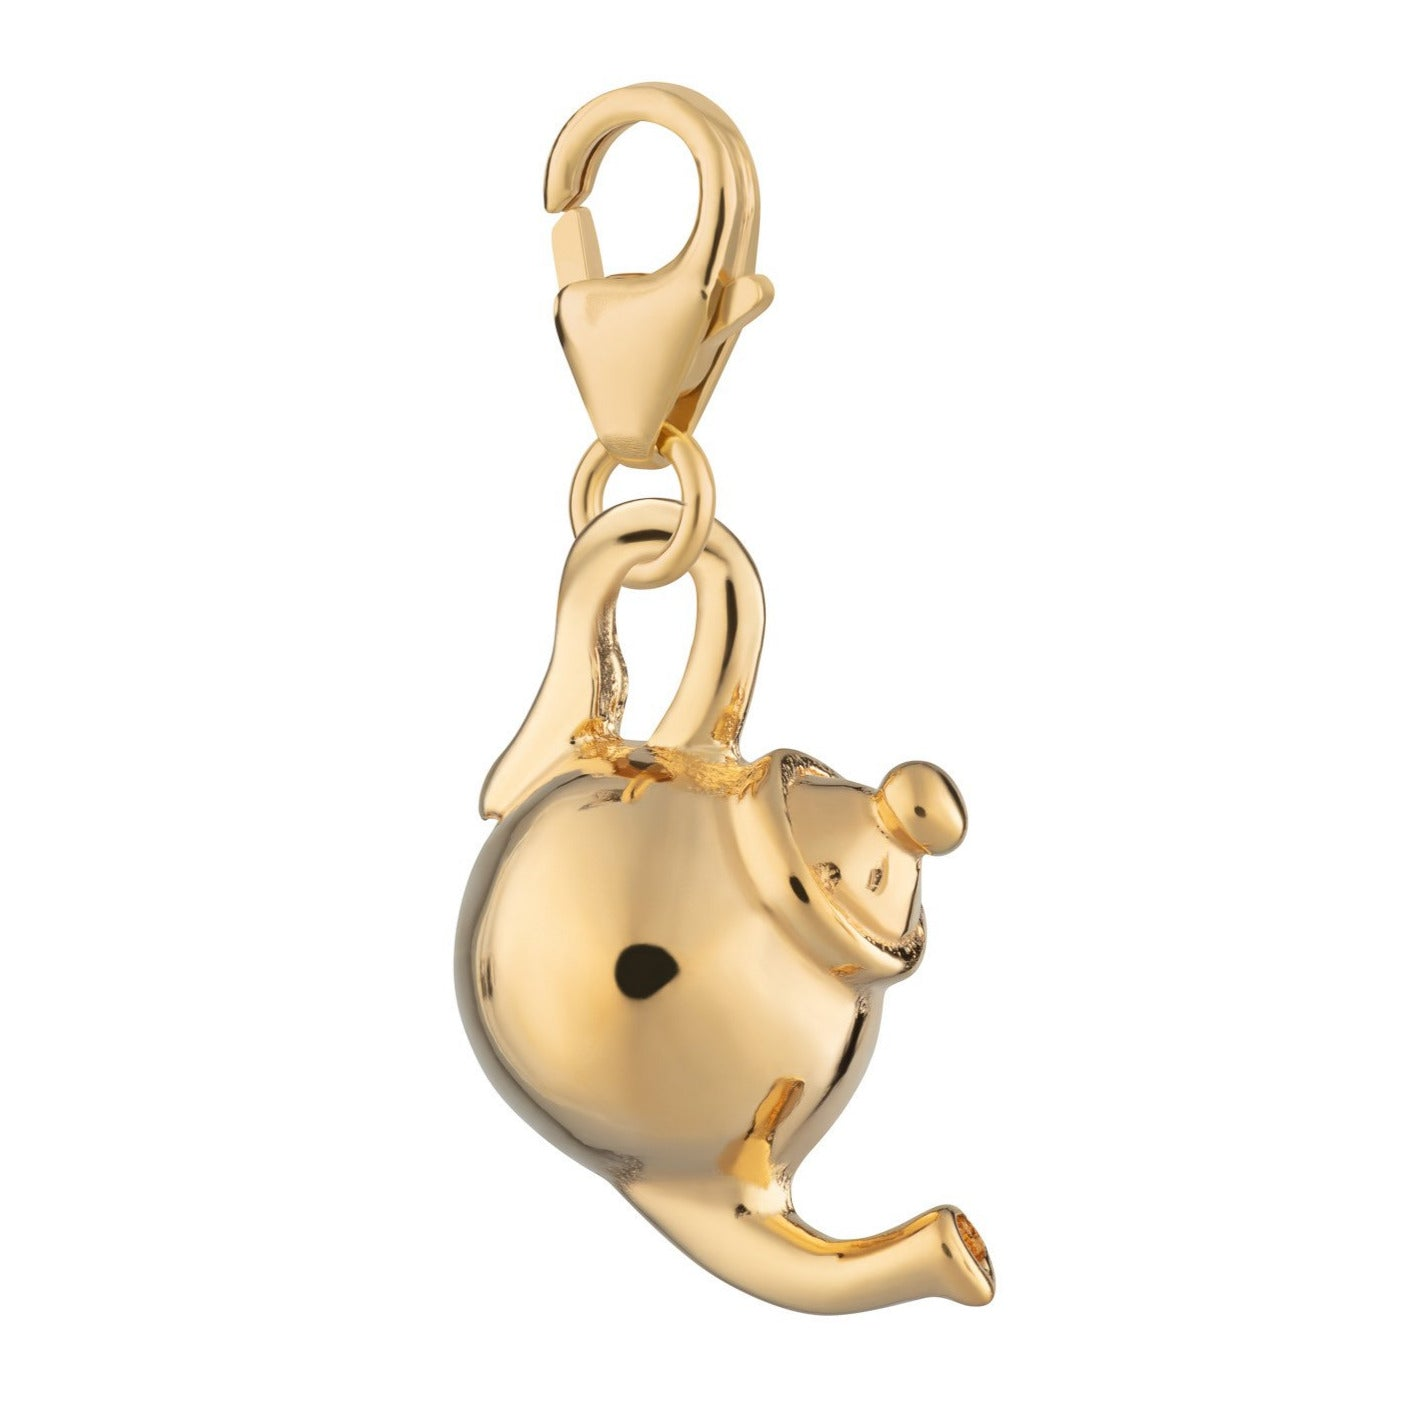 Gold Plated Teapot Clip on Charm by Lily Charmed